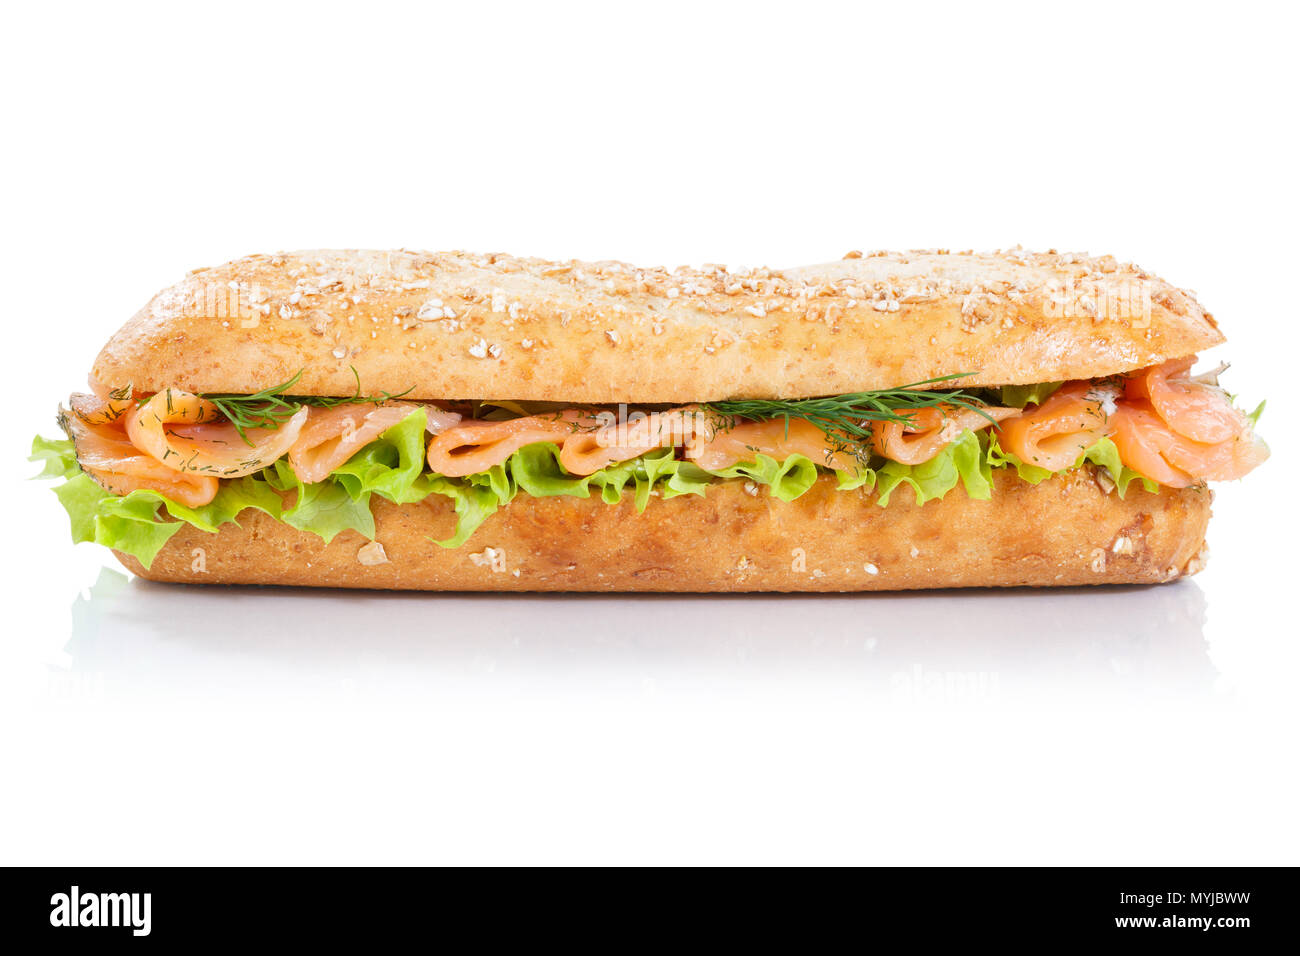 Sub sandwich whole grains baguette with smoked salmon fish lateral isolated on a white background - Stock Image